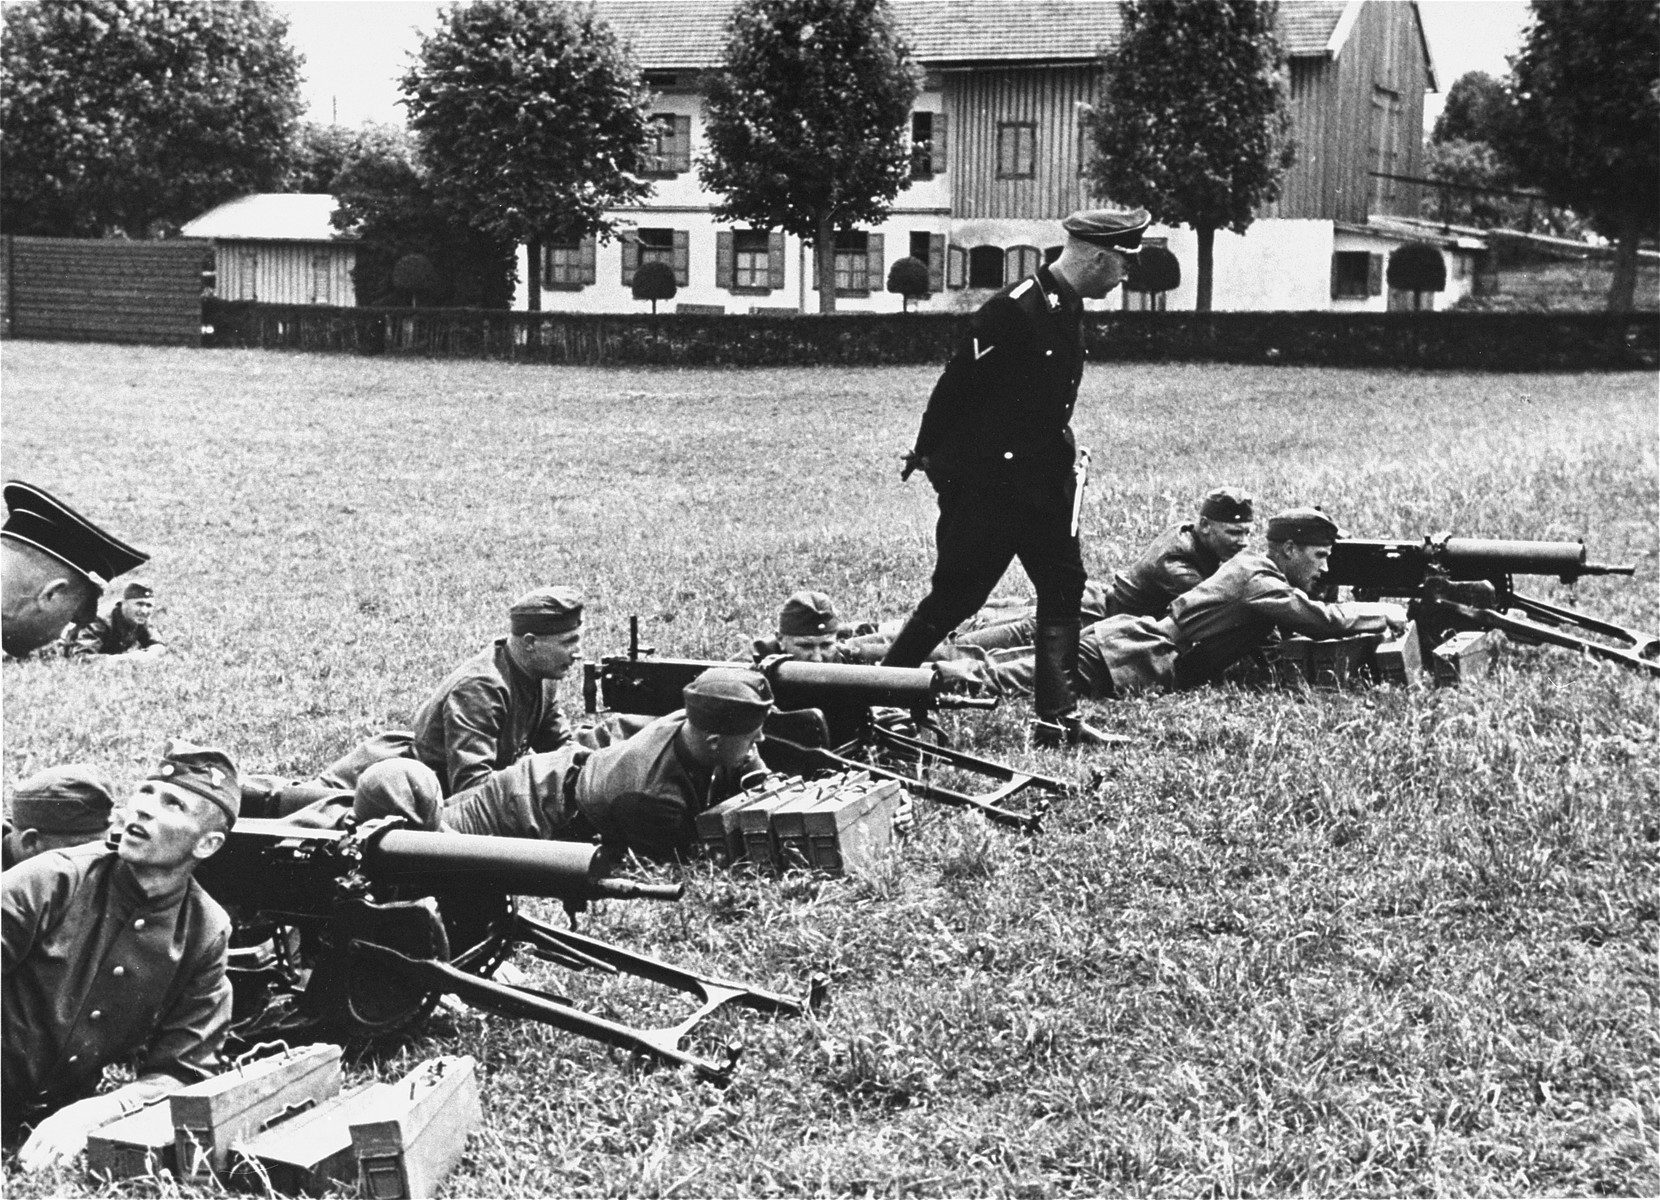 Heinrich Himmler inspects Waffen-SS troops.  This image is from an album of SS photographs.